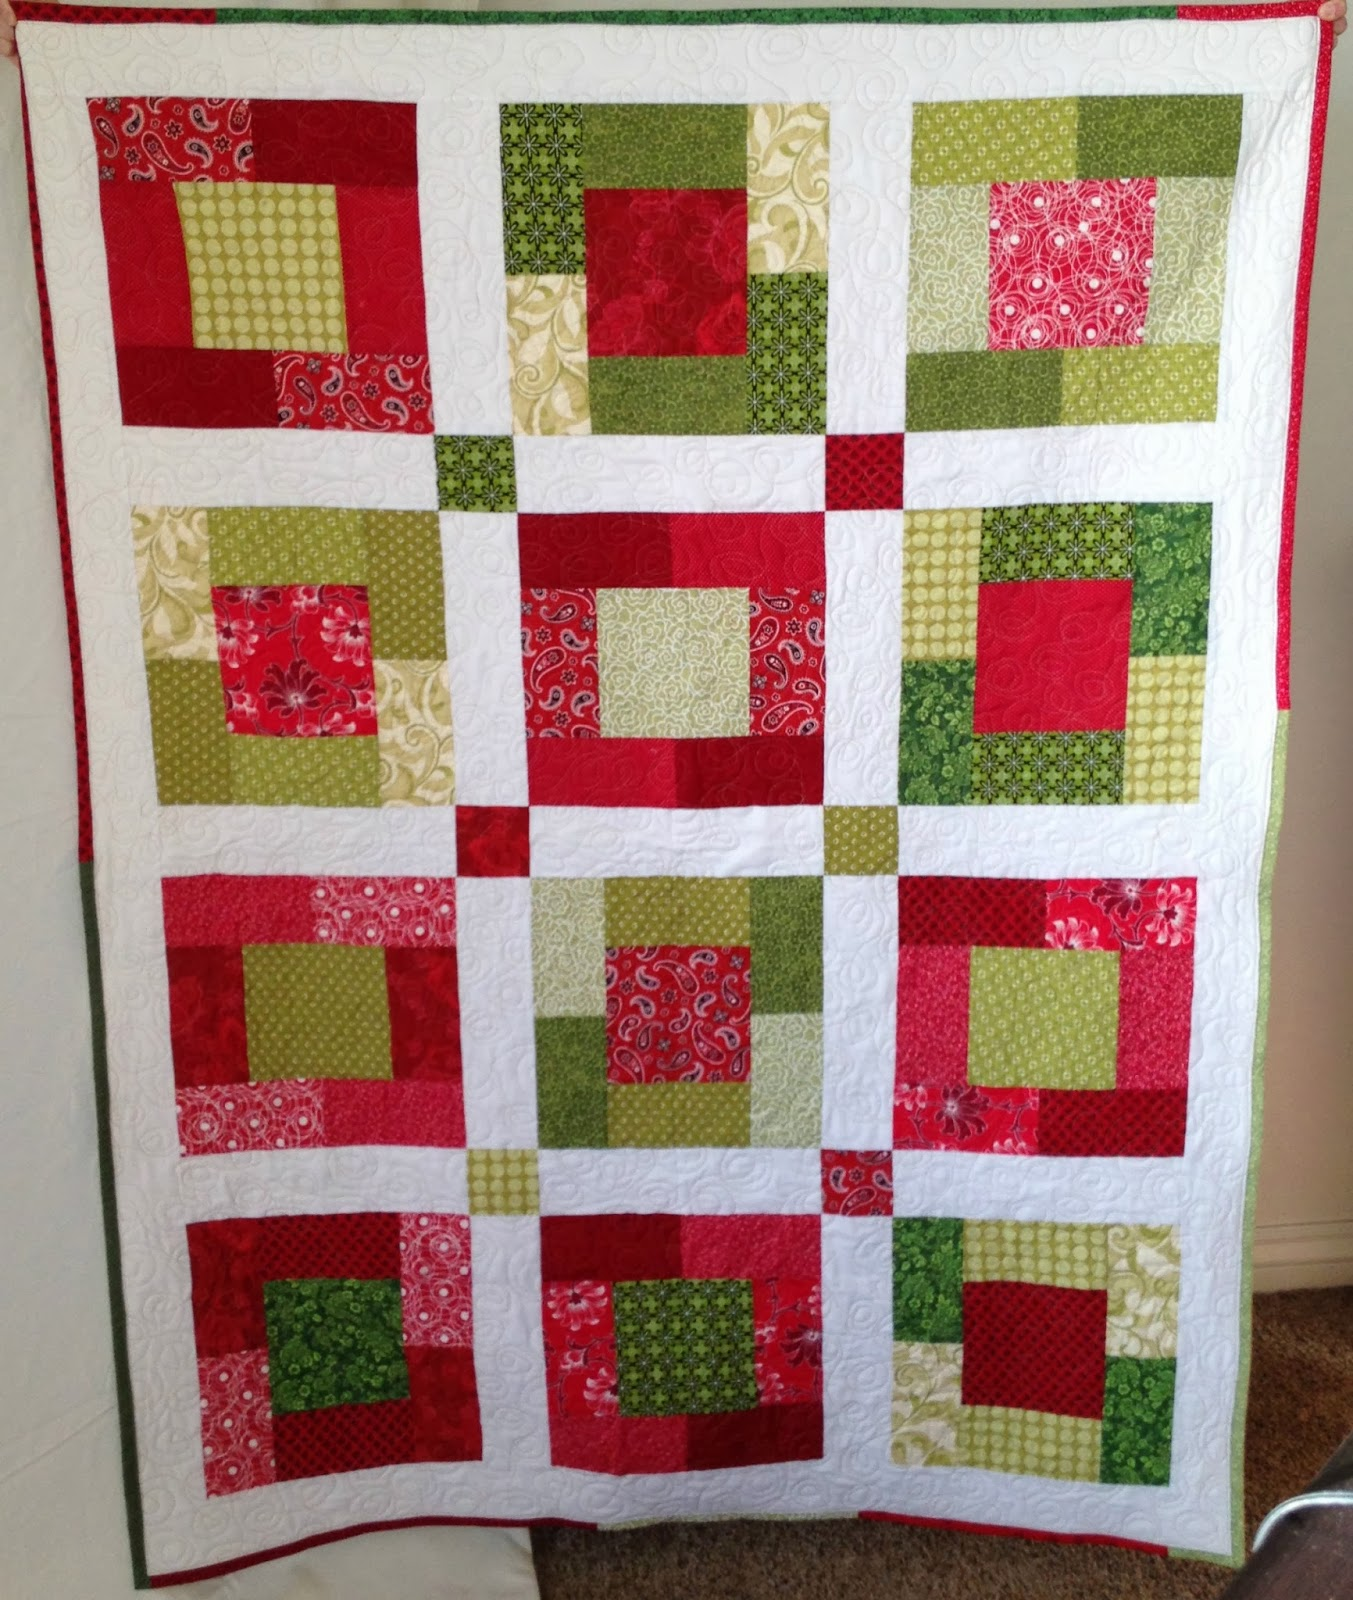 http://natalie-ever-after.blogspot.com/2014/02/christmas-box-quilt-tutorial.html